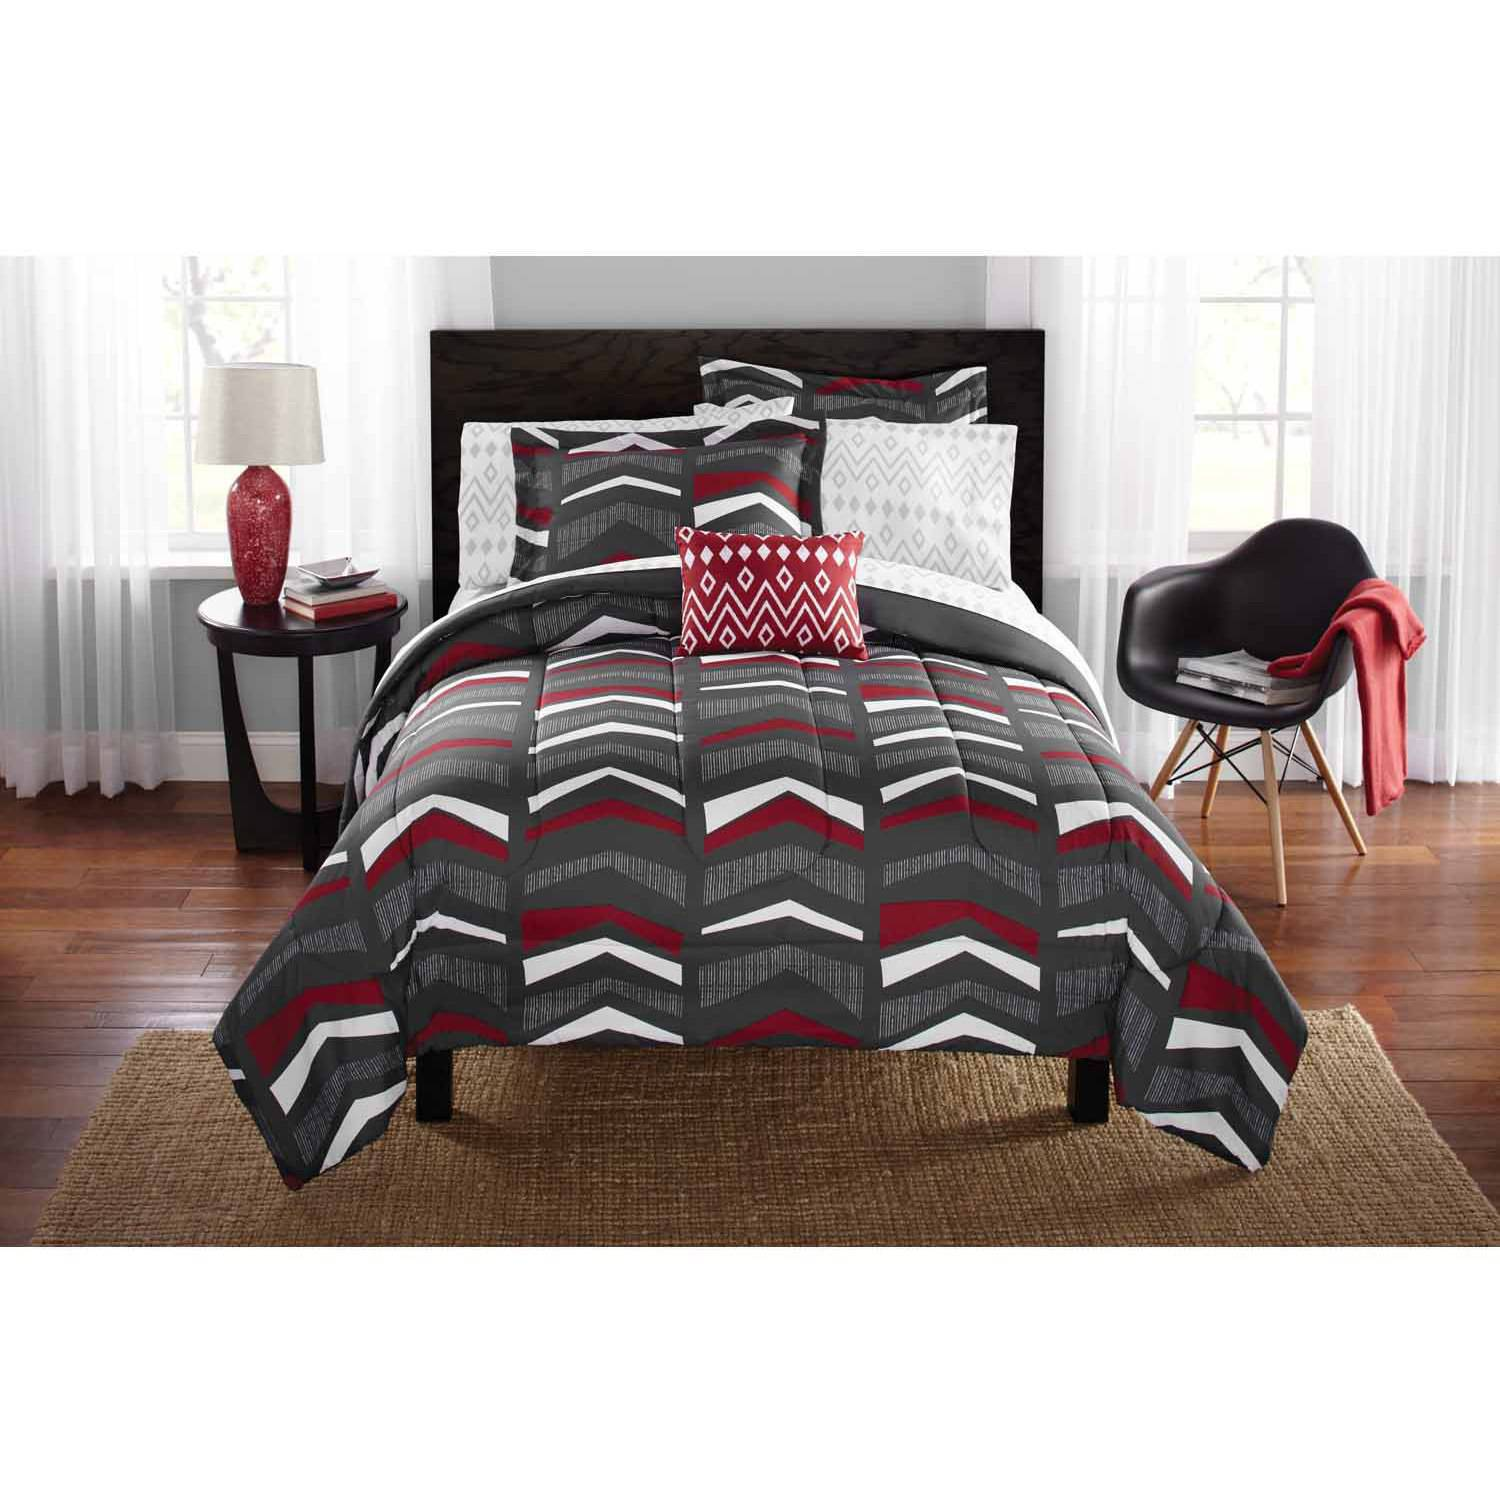 mainstays tribal chevron bed in a bag complete bedding set  - mainstays tribal chevron bed in a bag complete bedding set  walmartcom